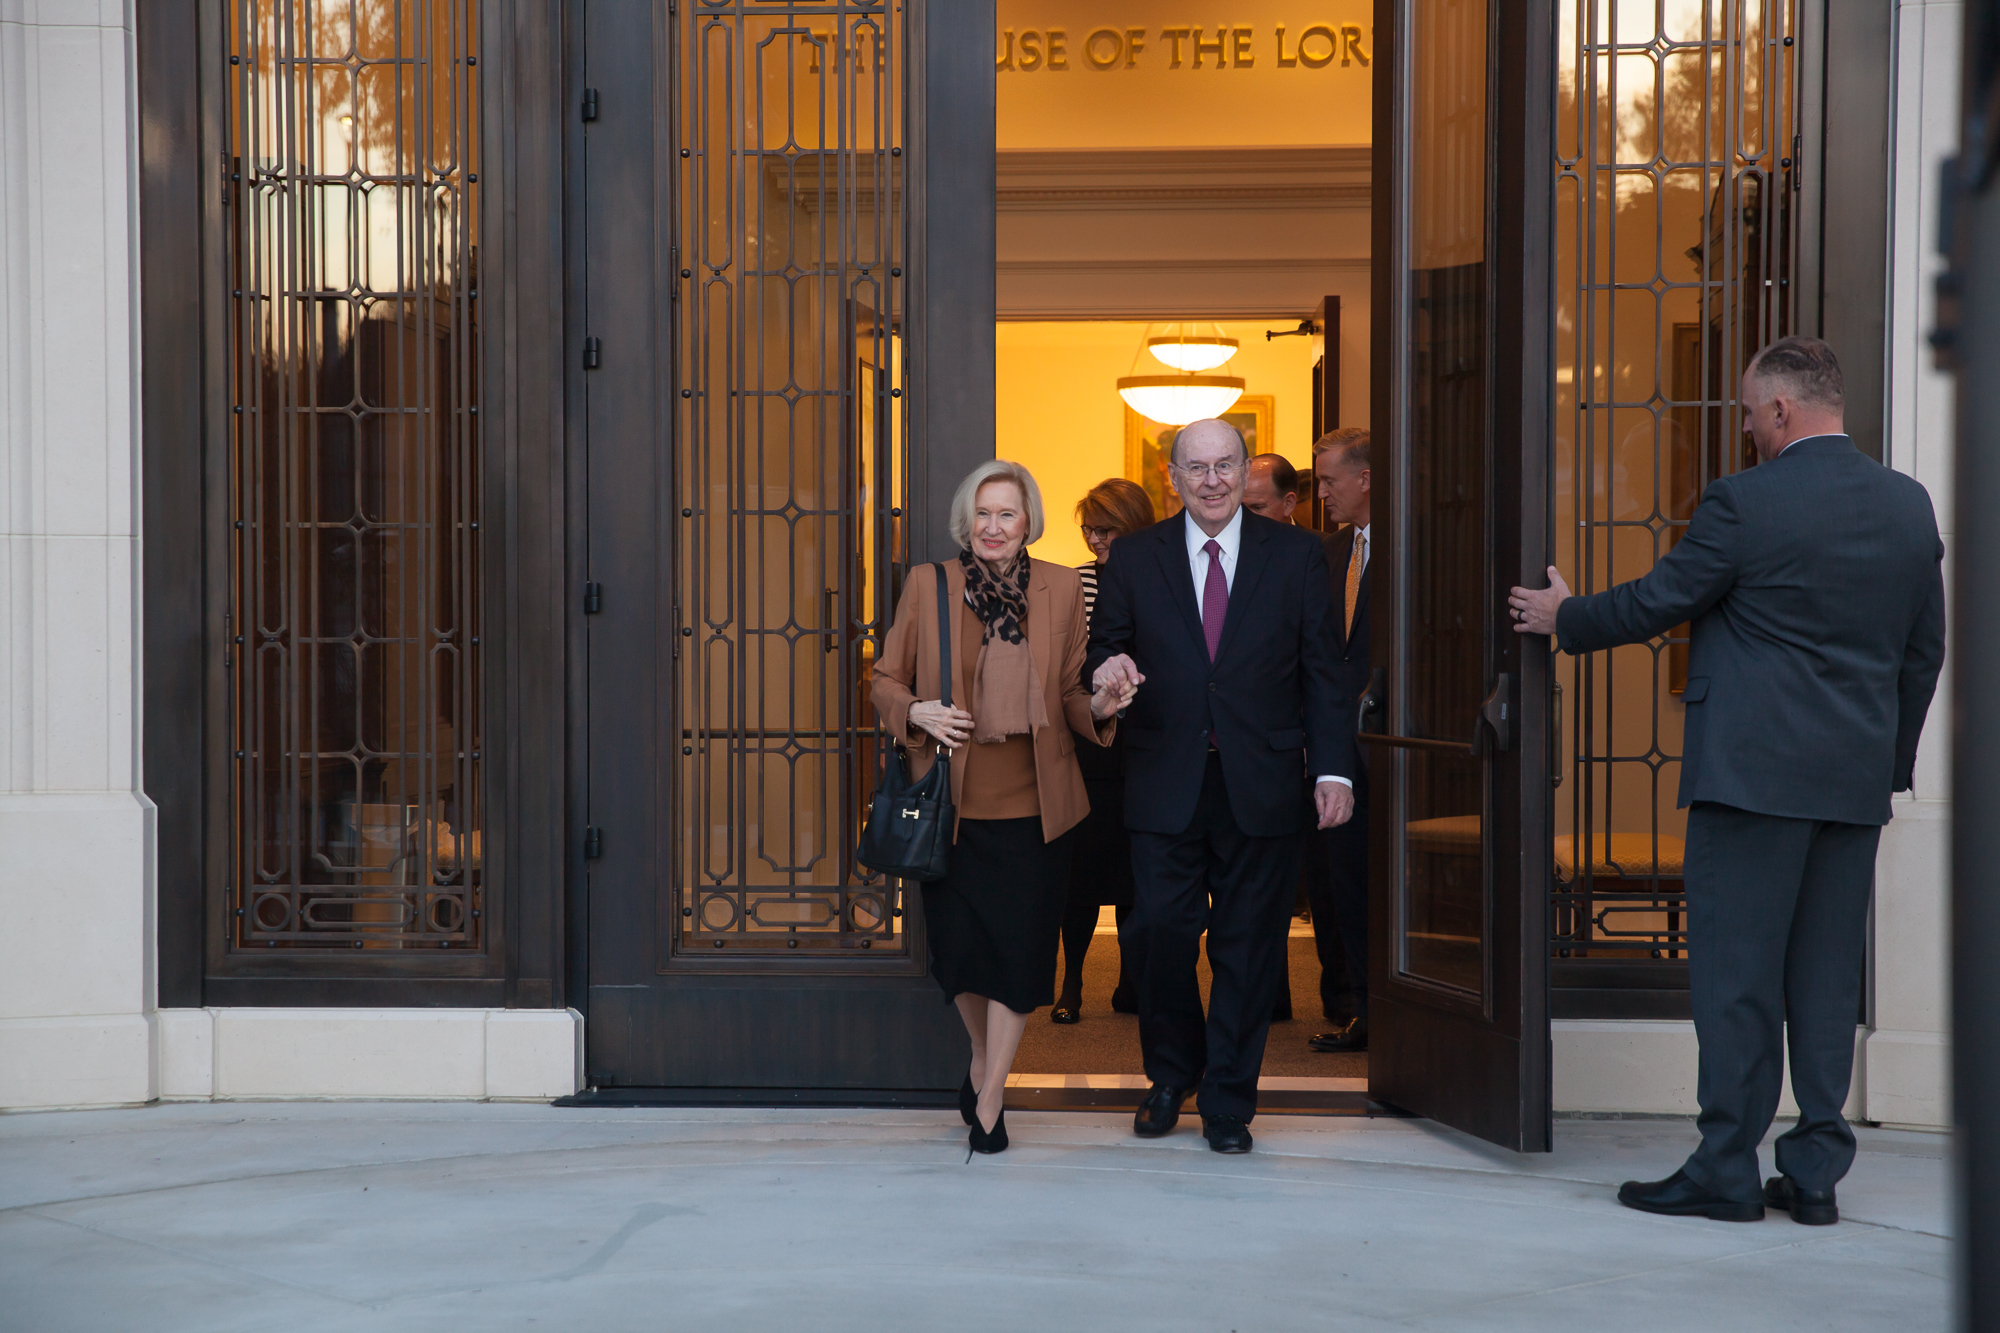 Elder Quentin L. Cook of the Quorum of the Twelve Apostles and his wife, Sister Mary Cook, exit the Baton Rouge Louisiana Temple the evening prior to its rededication on Saturday, Nov. 16, 2019.